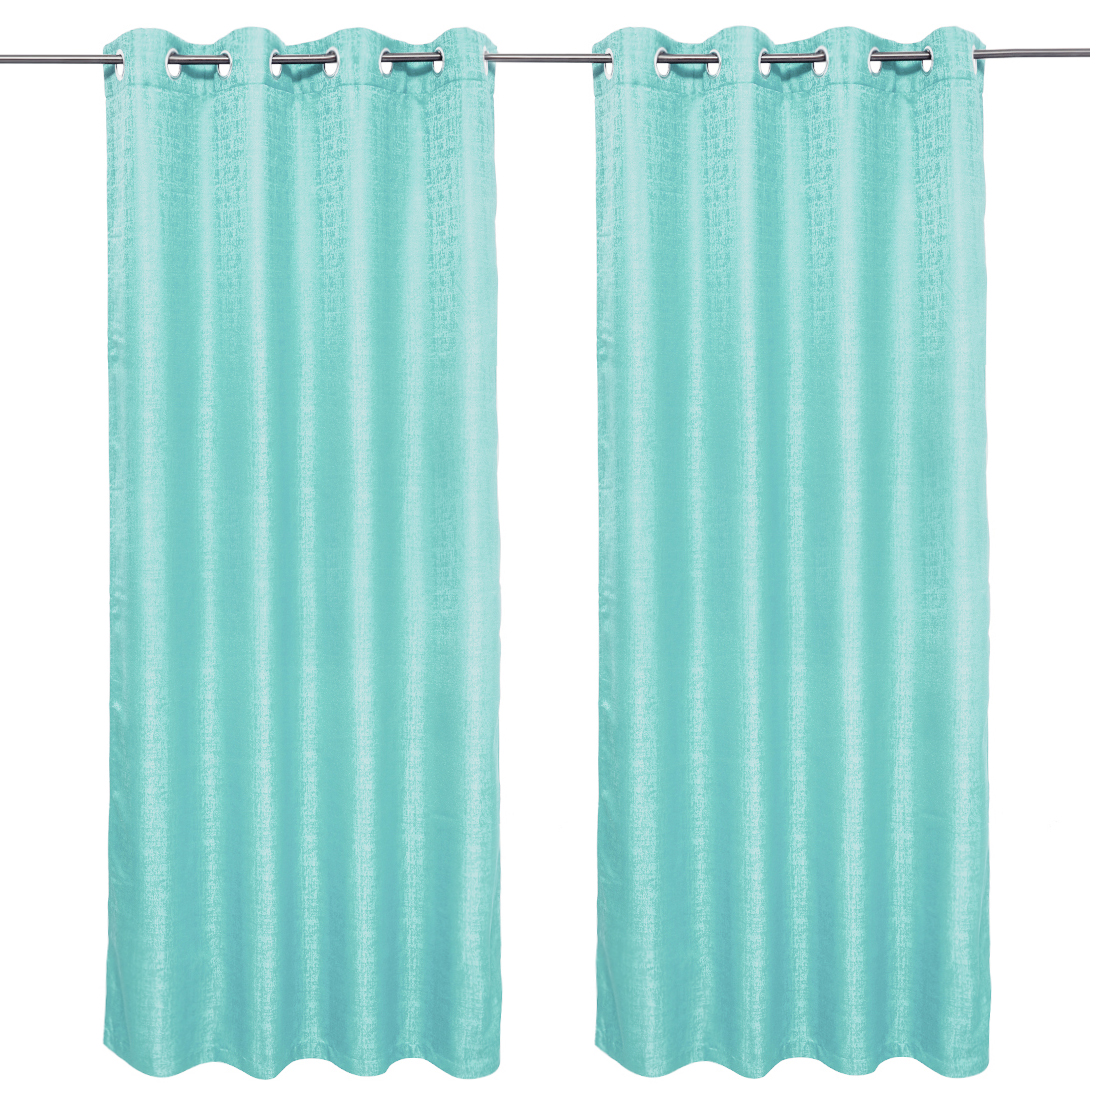 Nora Solid set of 2 Polyester Door Curtains in Turquoise Colour by Living Essence